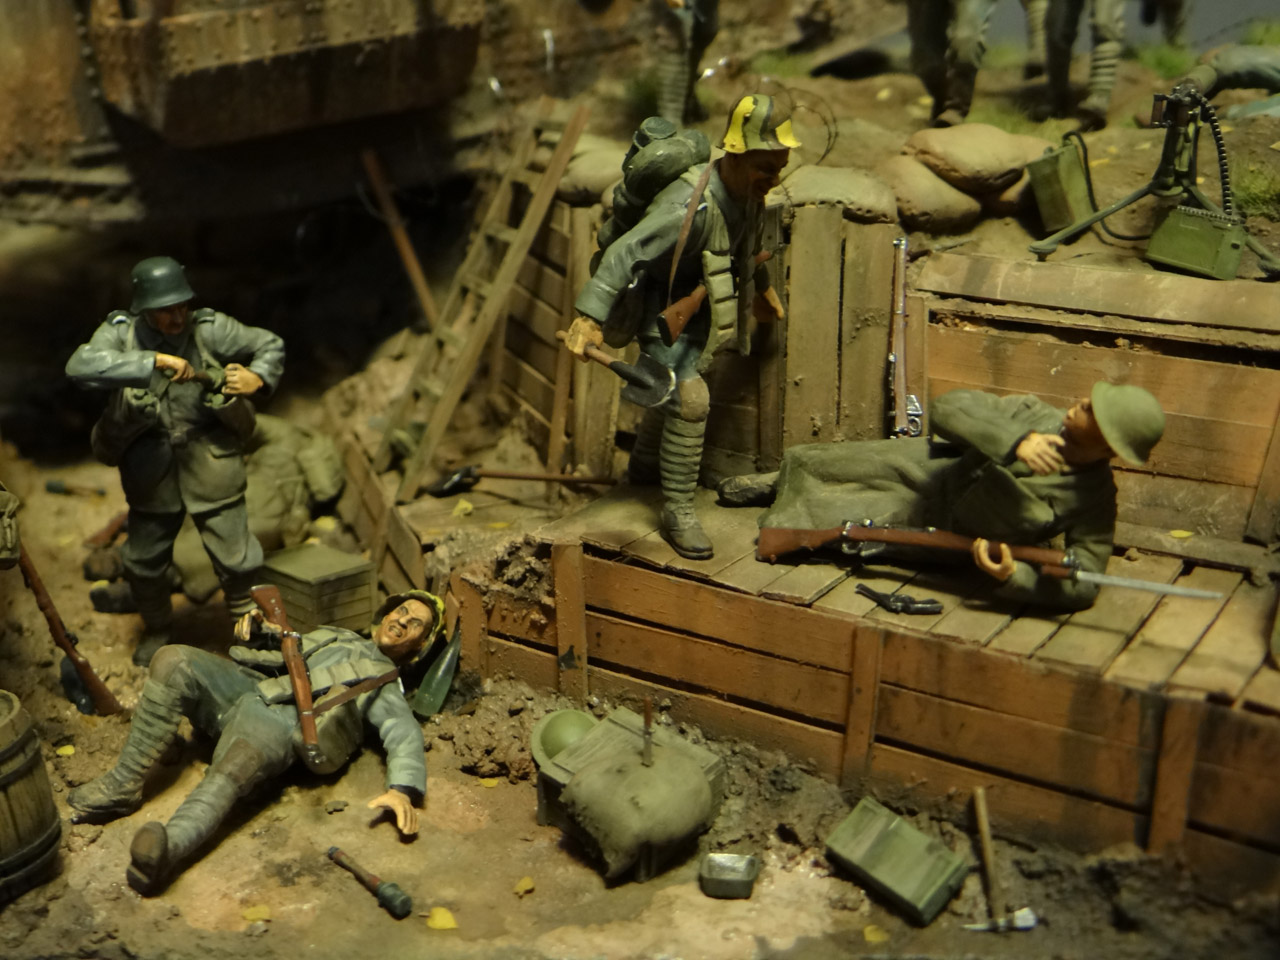 Dioramas and Vignettes: For the Great Germany!, photo #9